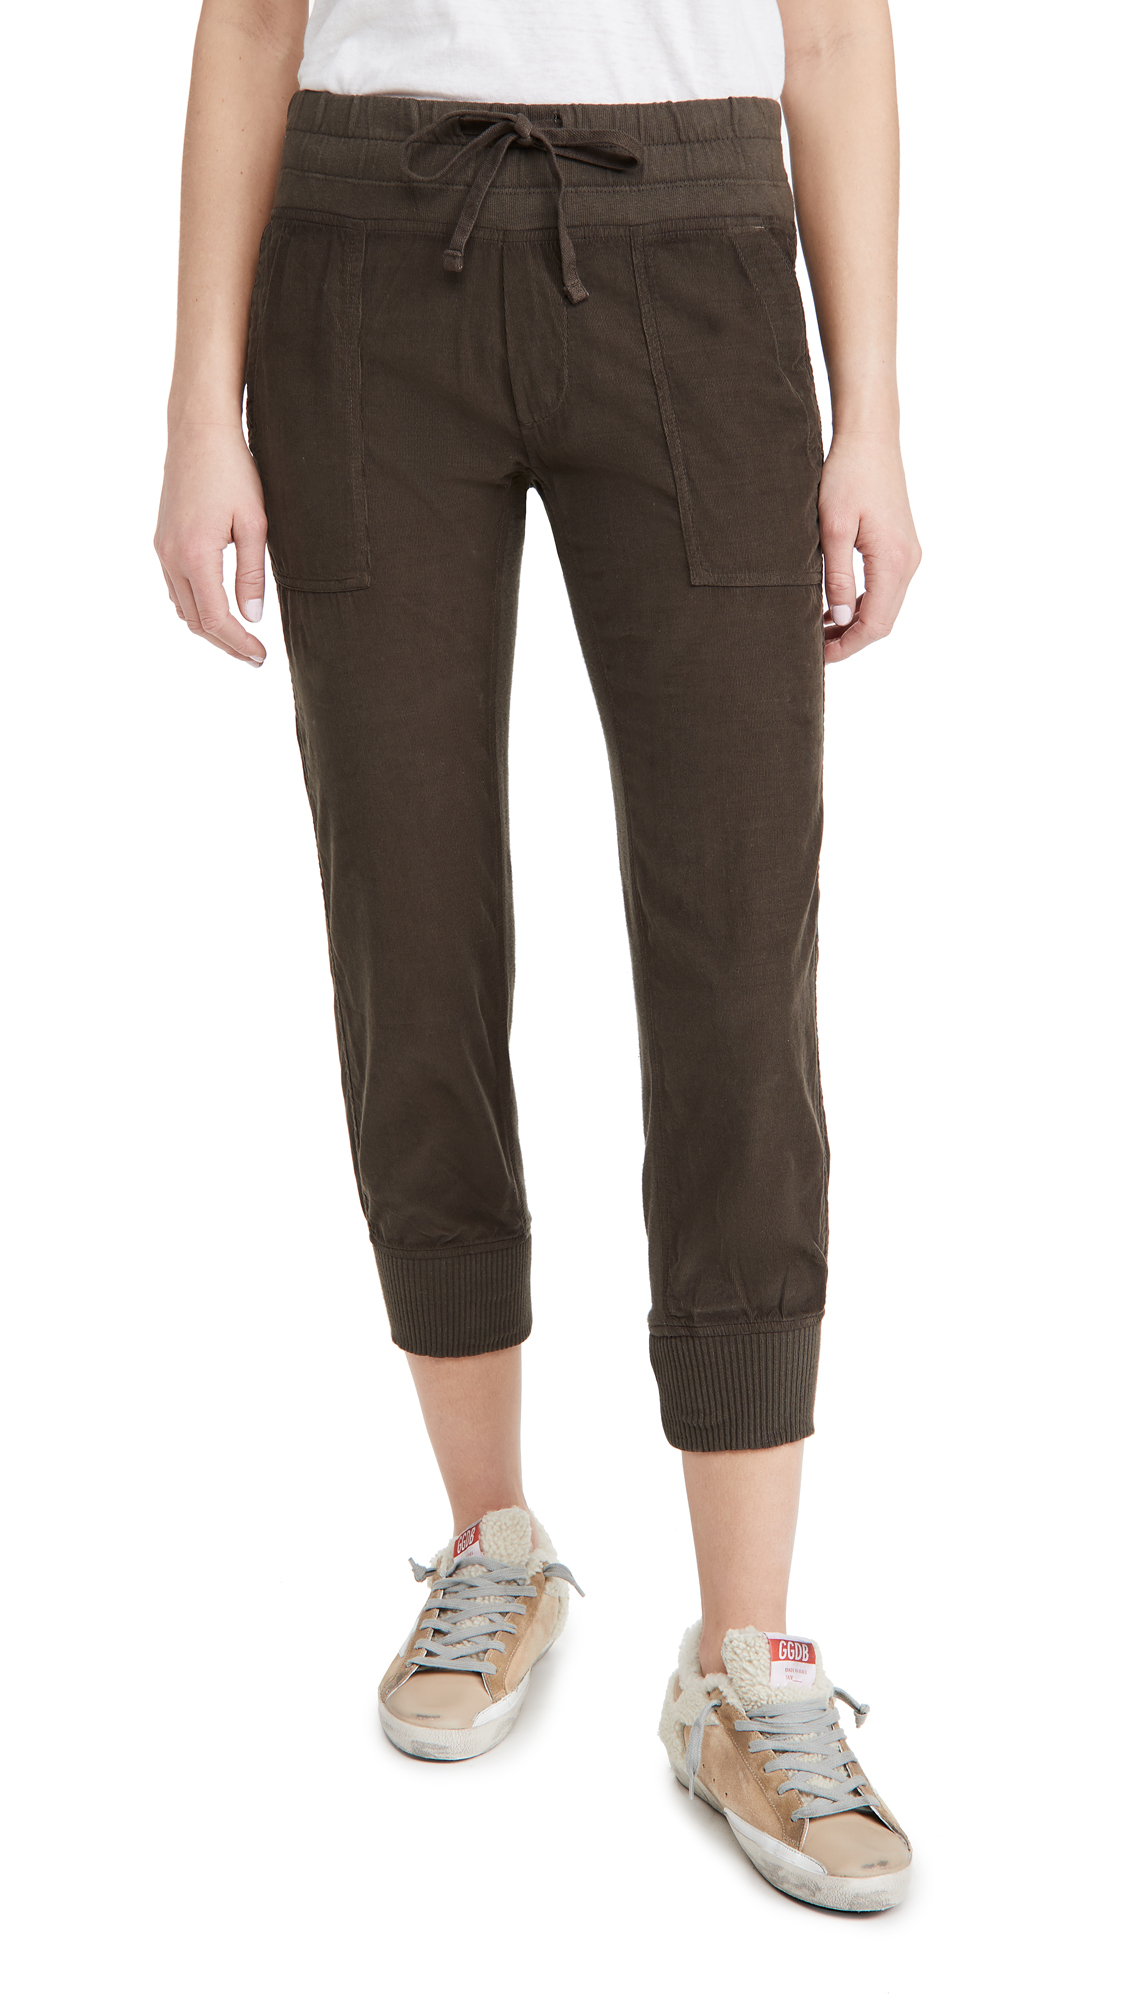 James Perse Corduroy Mixed Media Pants